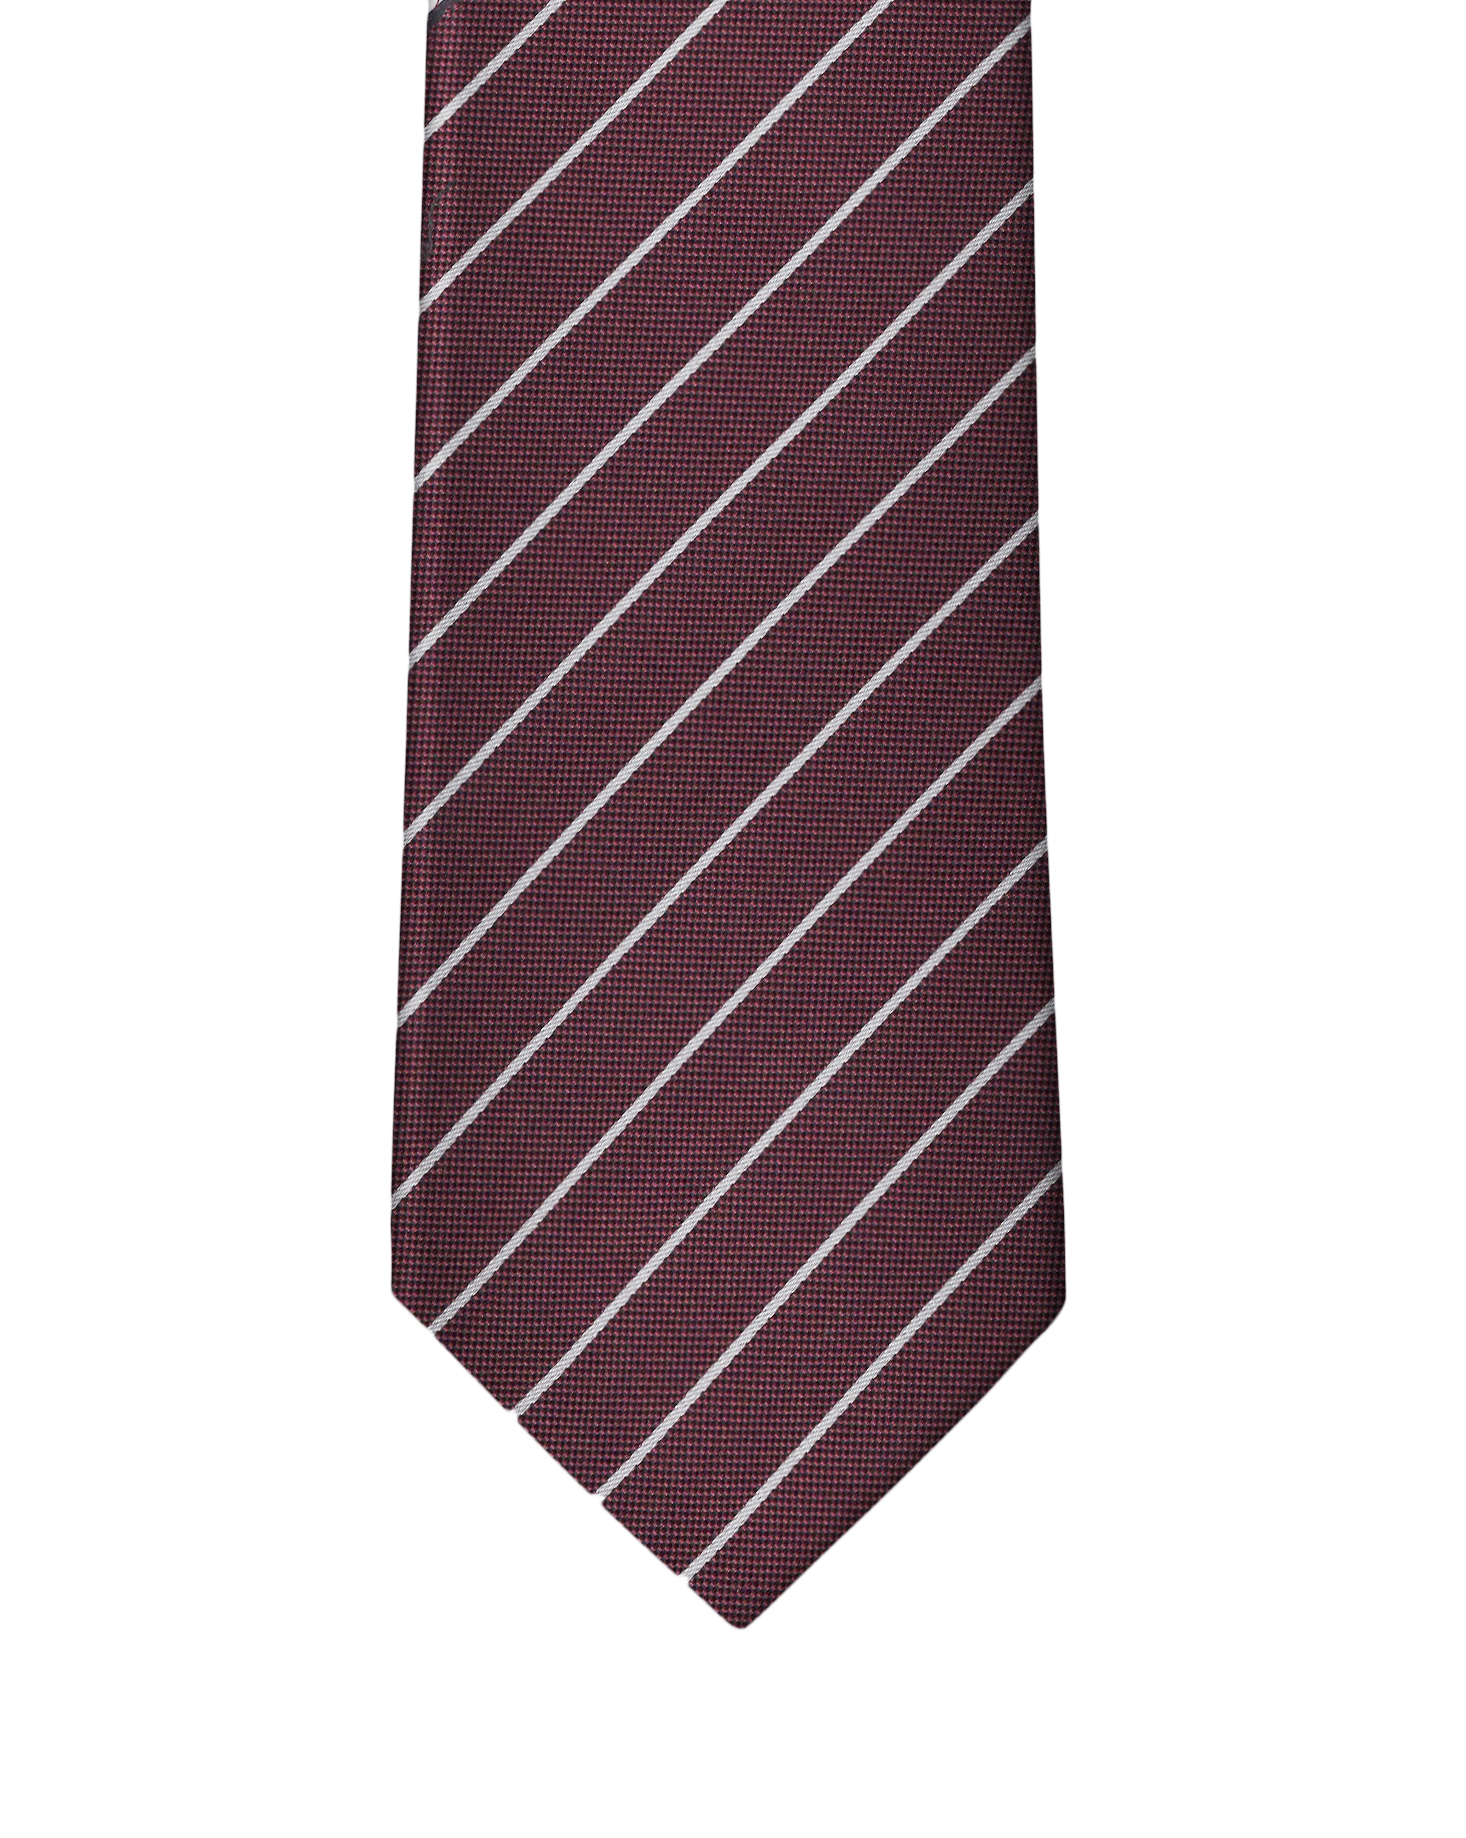 Burgundy Pin Stripe Necktie